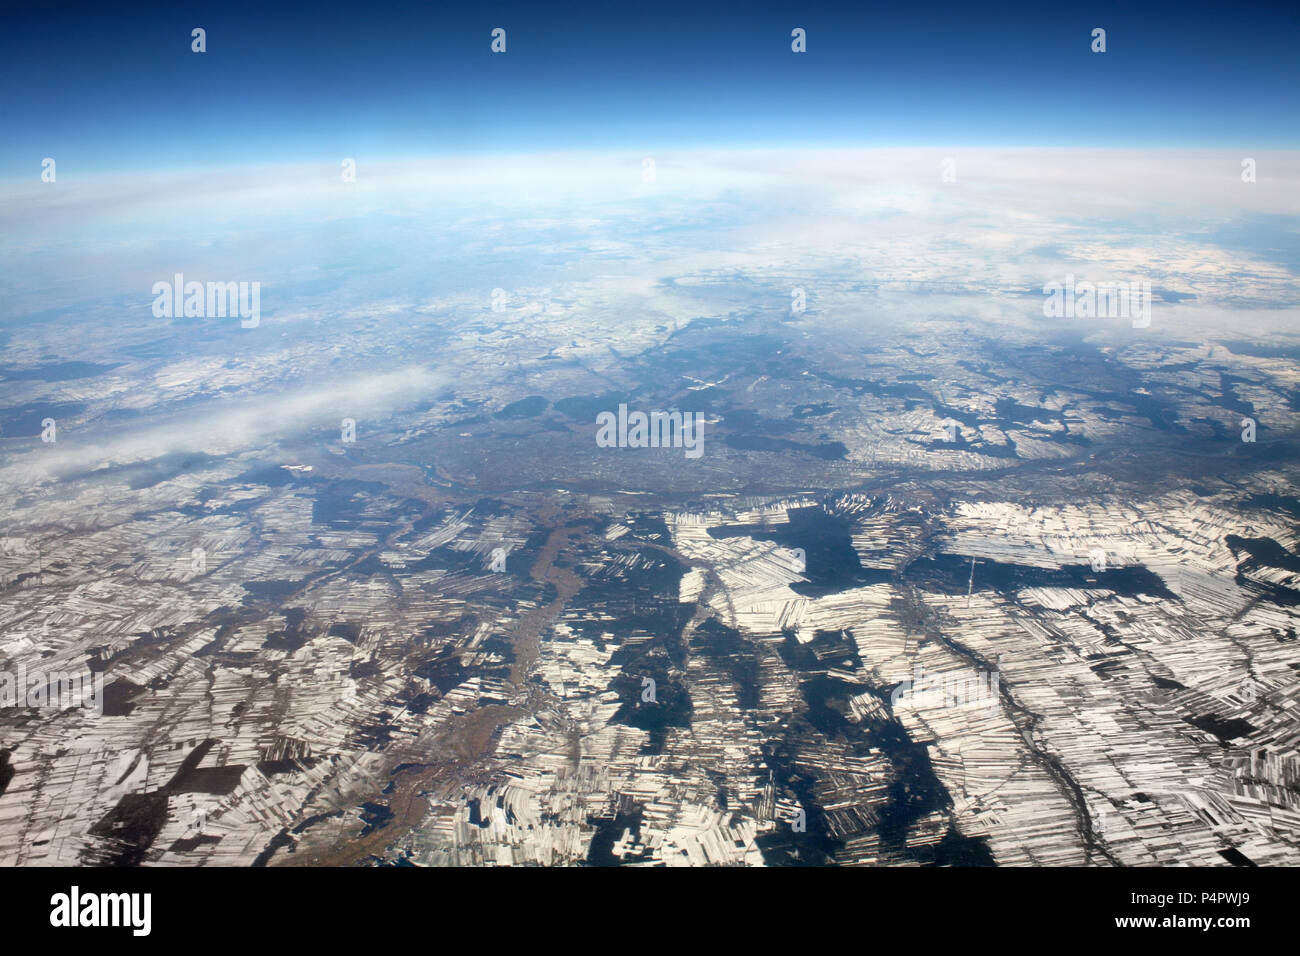 Aerial photo, view from airplane on winter. Europe from above. Aerial view of parcels. - Stock Image